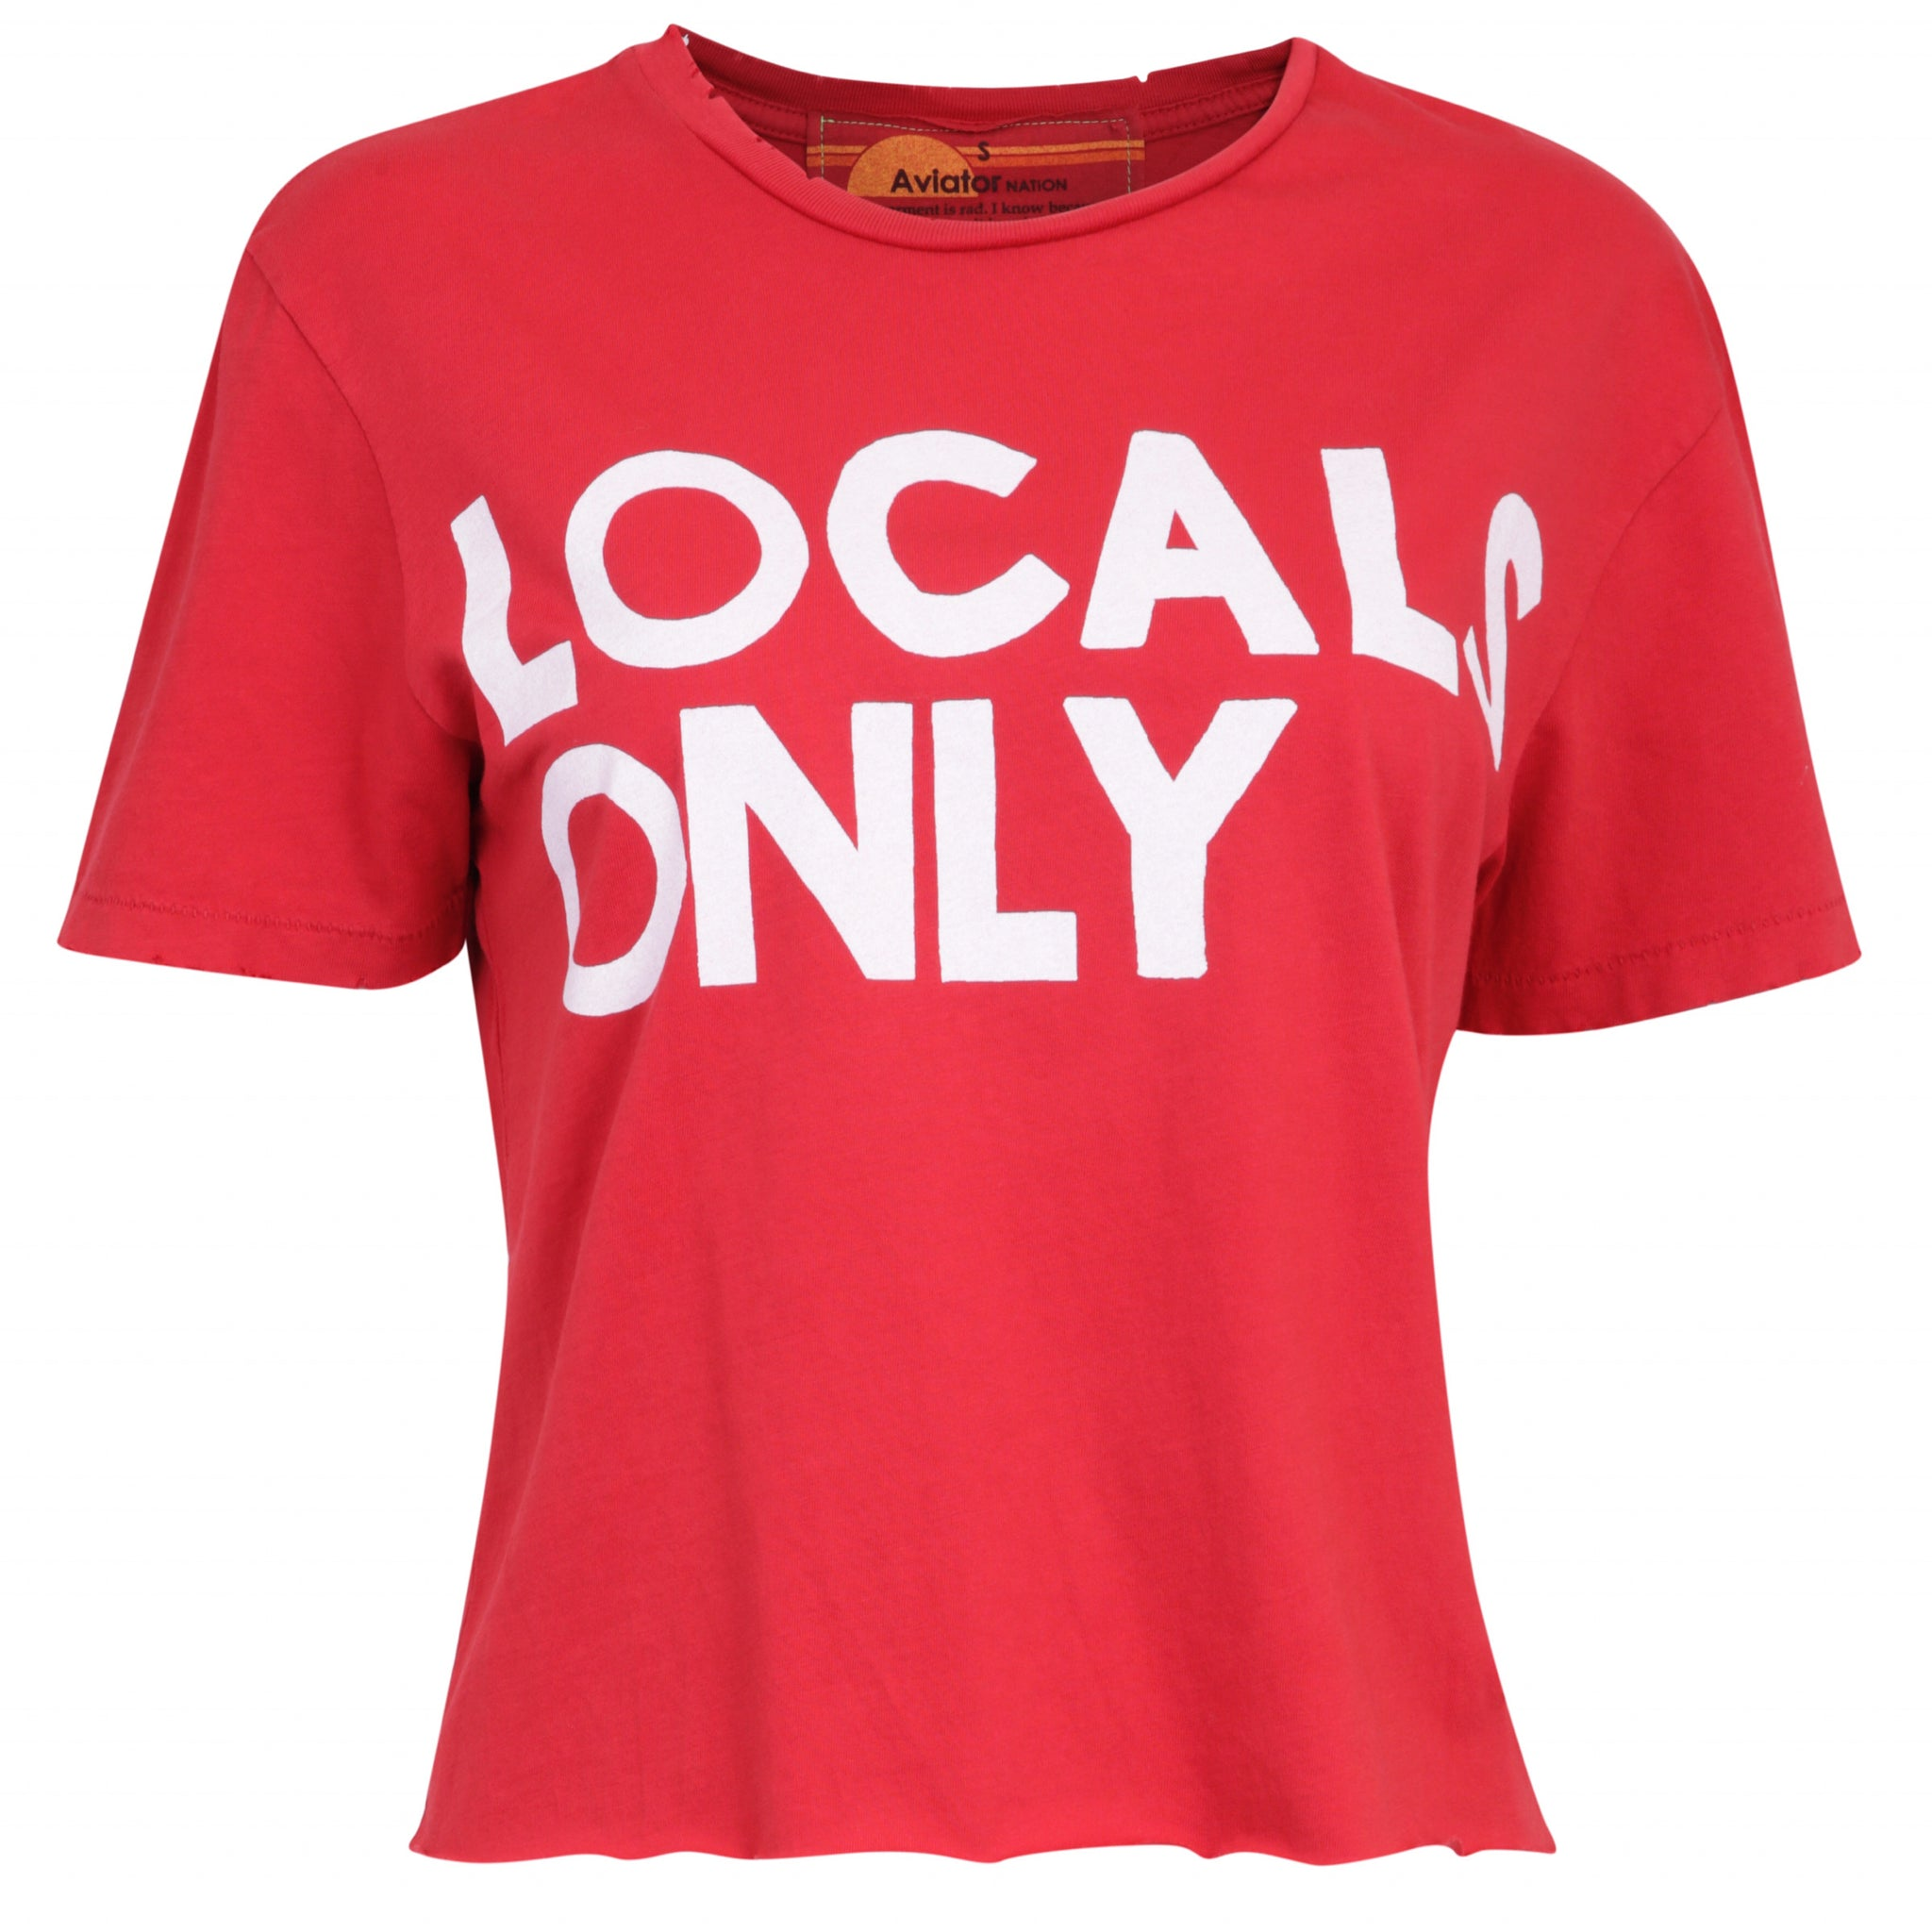 """Locals only"" Red T-shirt"